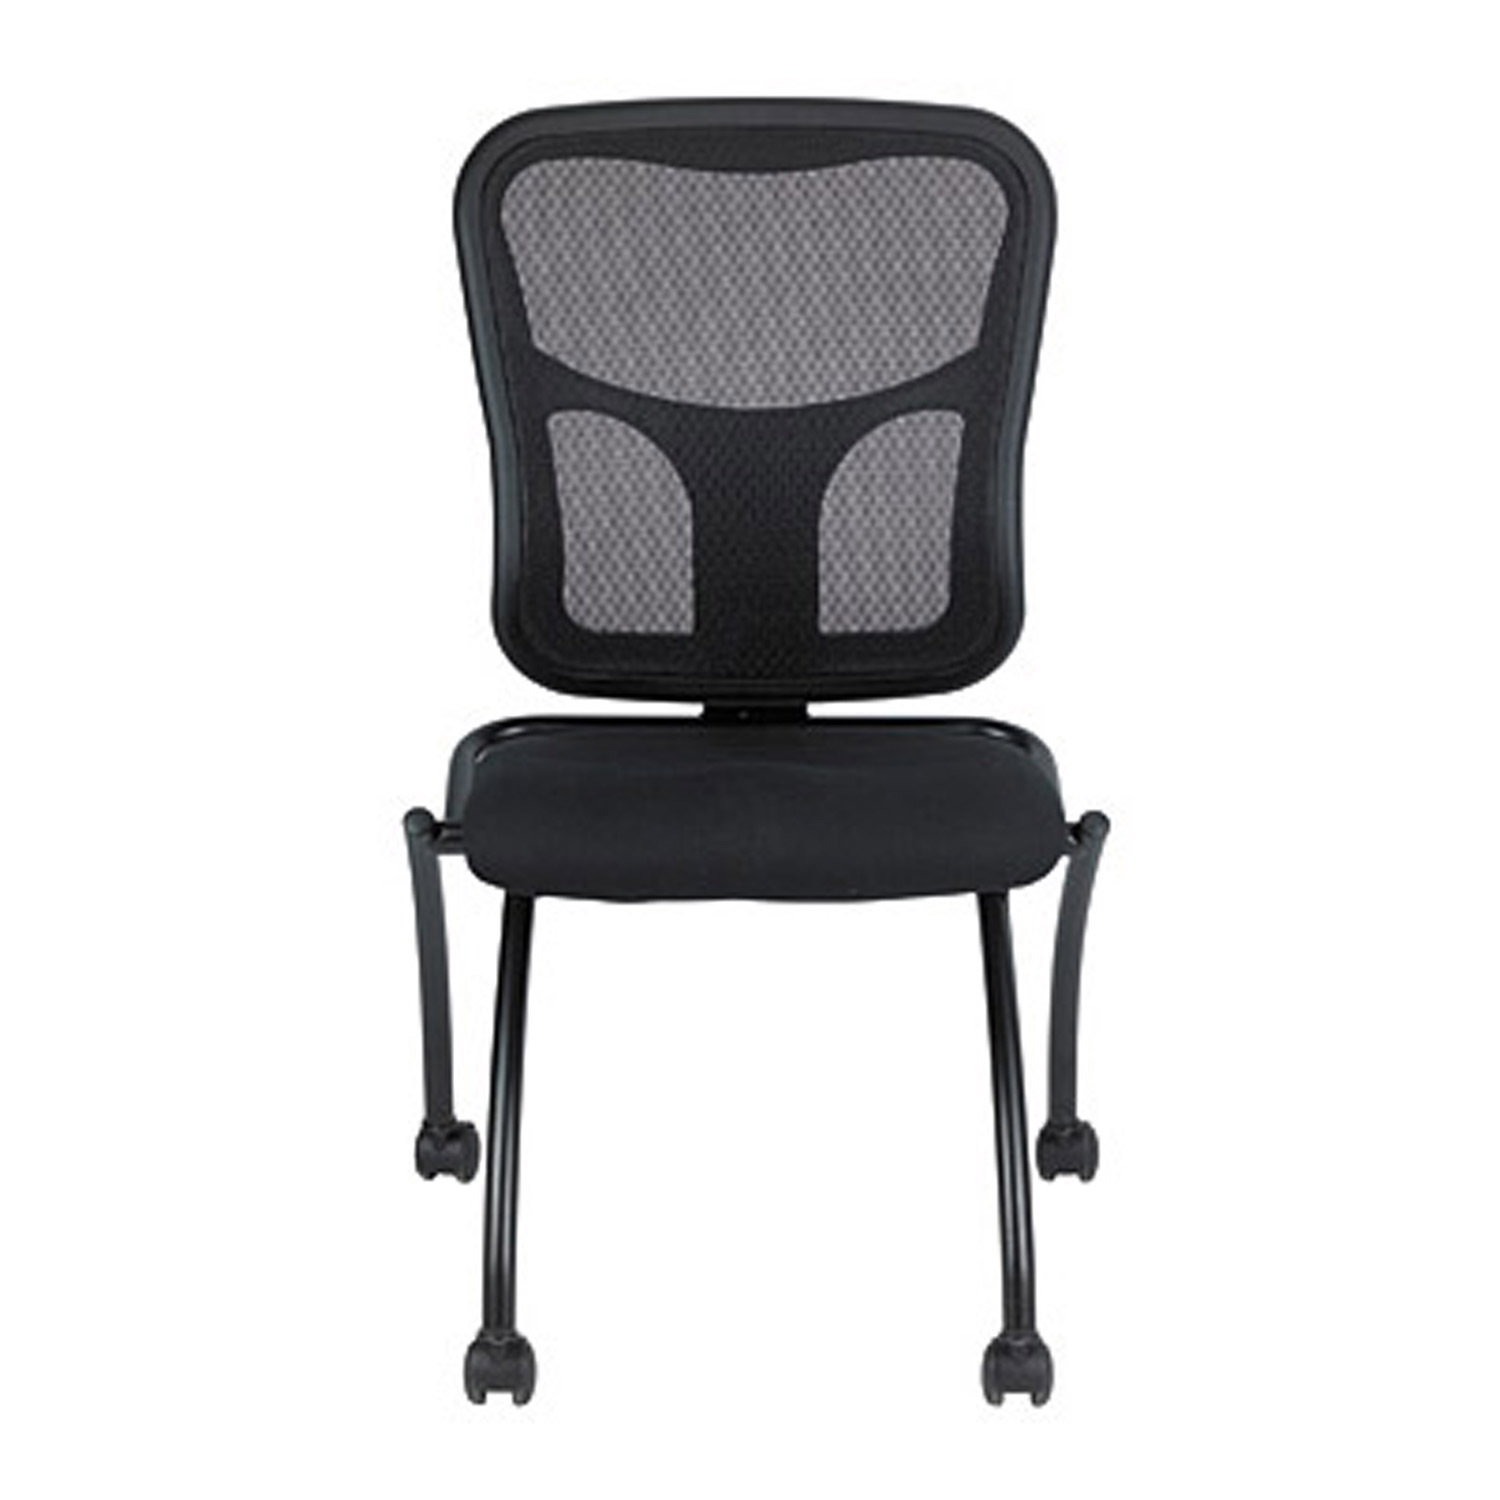 folding executive chair ikea covers canada armless 0ffice chairs guest office furniture